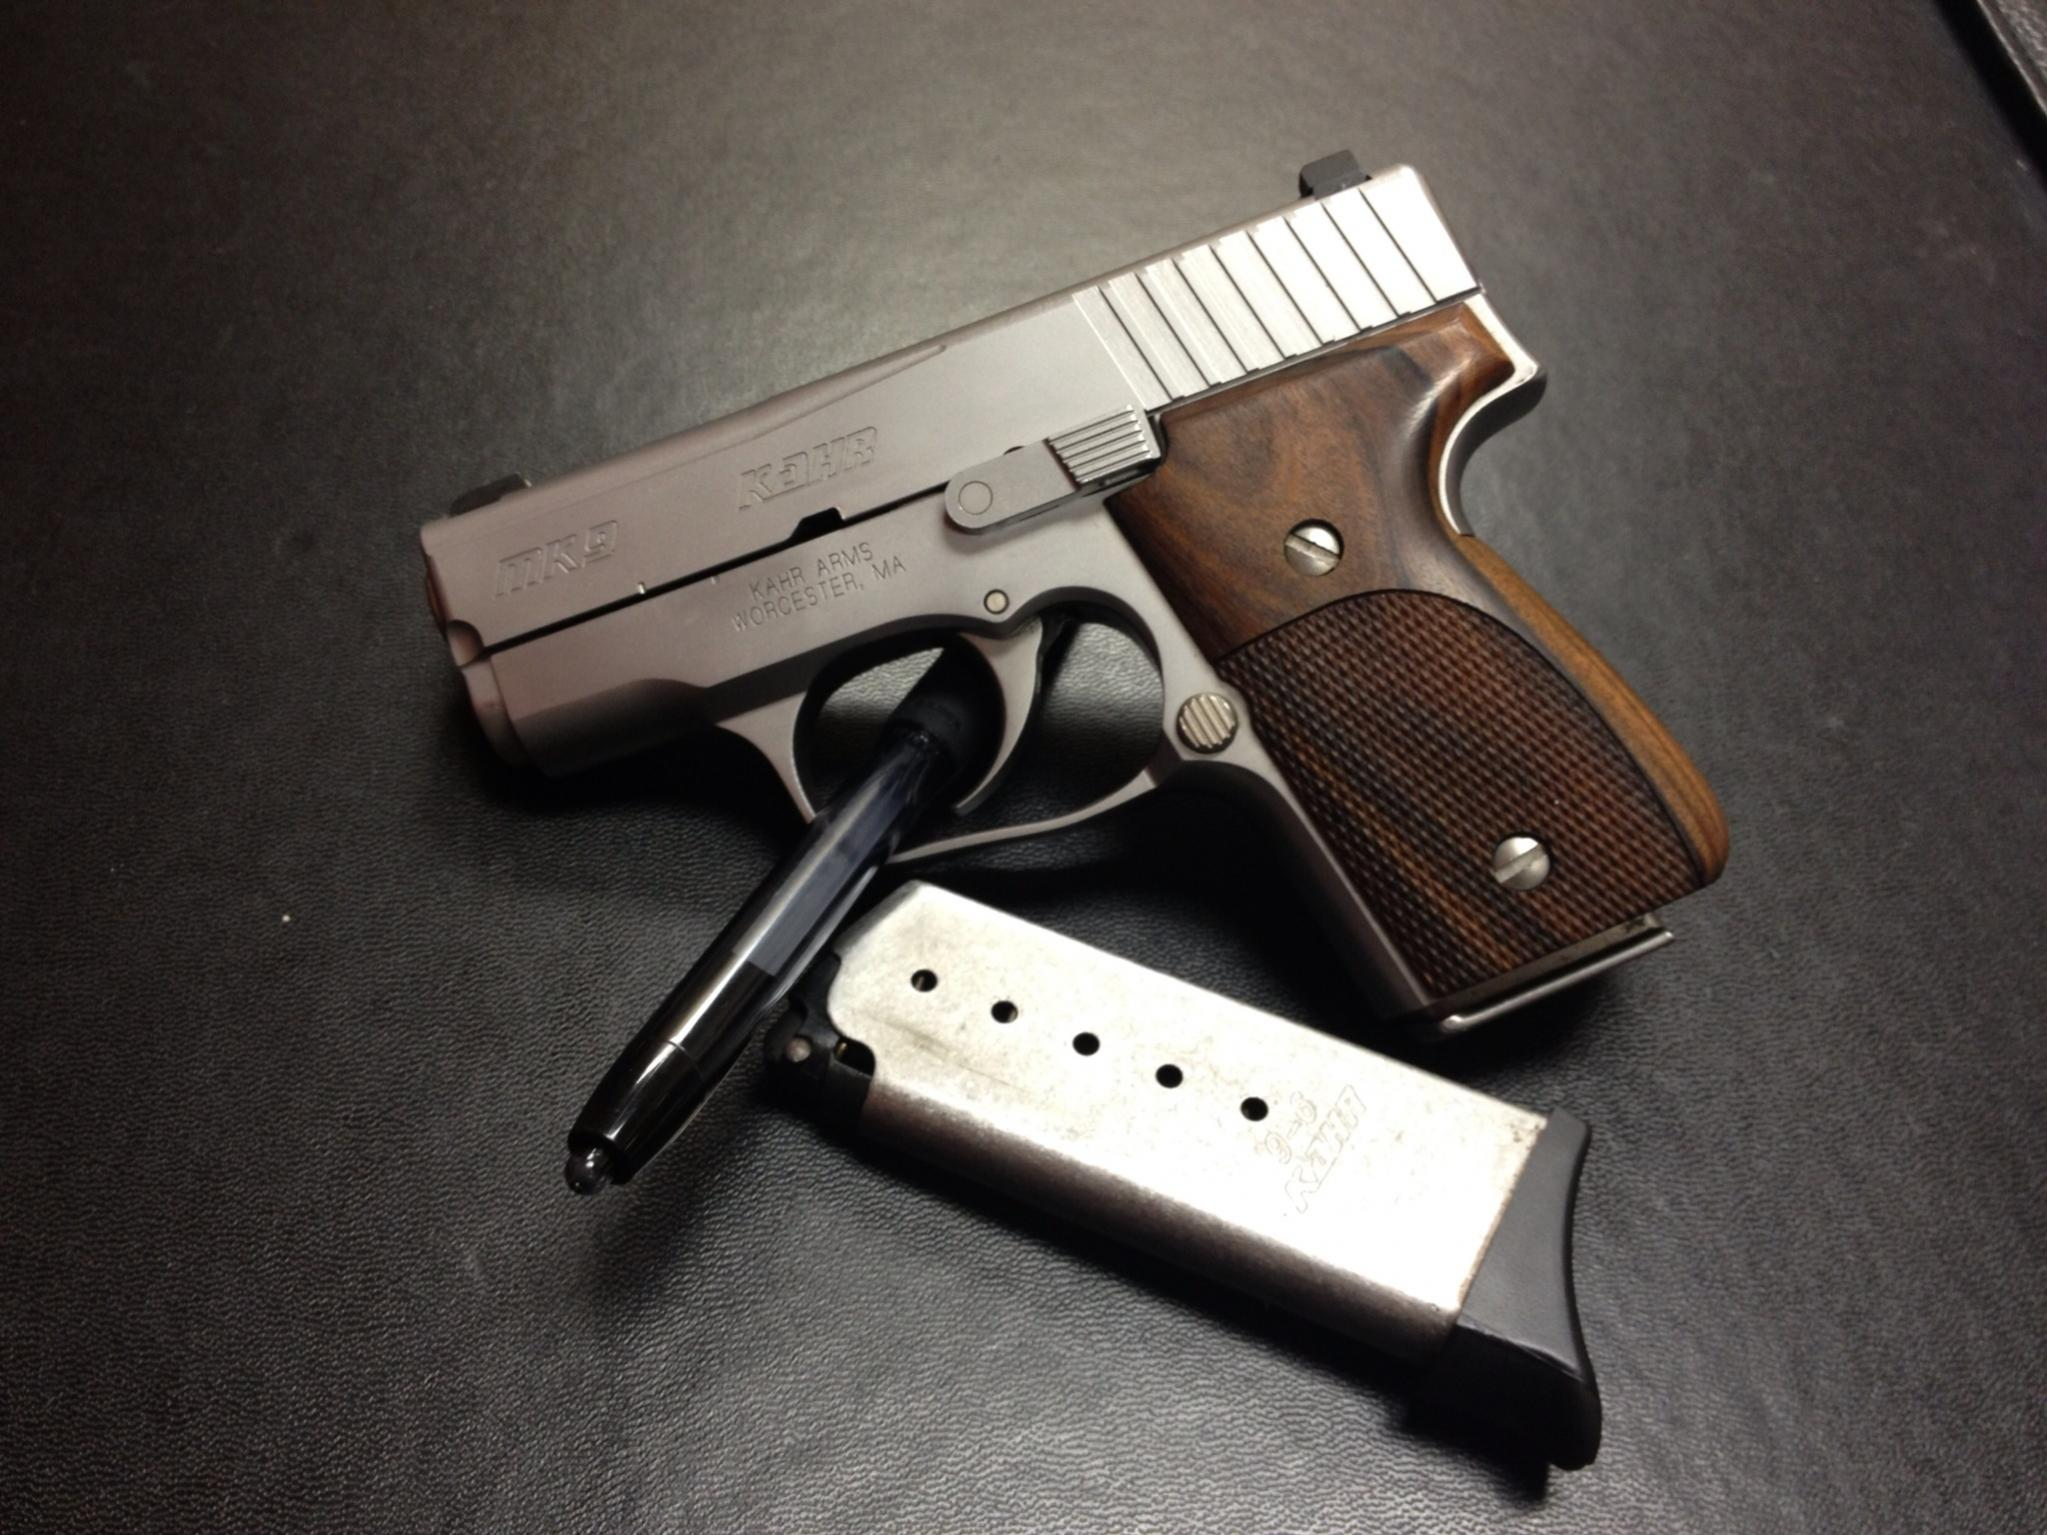 Kahr MK9 vs. P380, or any other small gun?-image.jpg